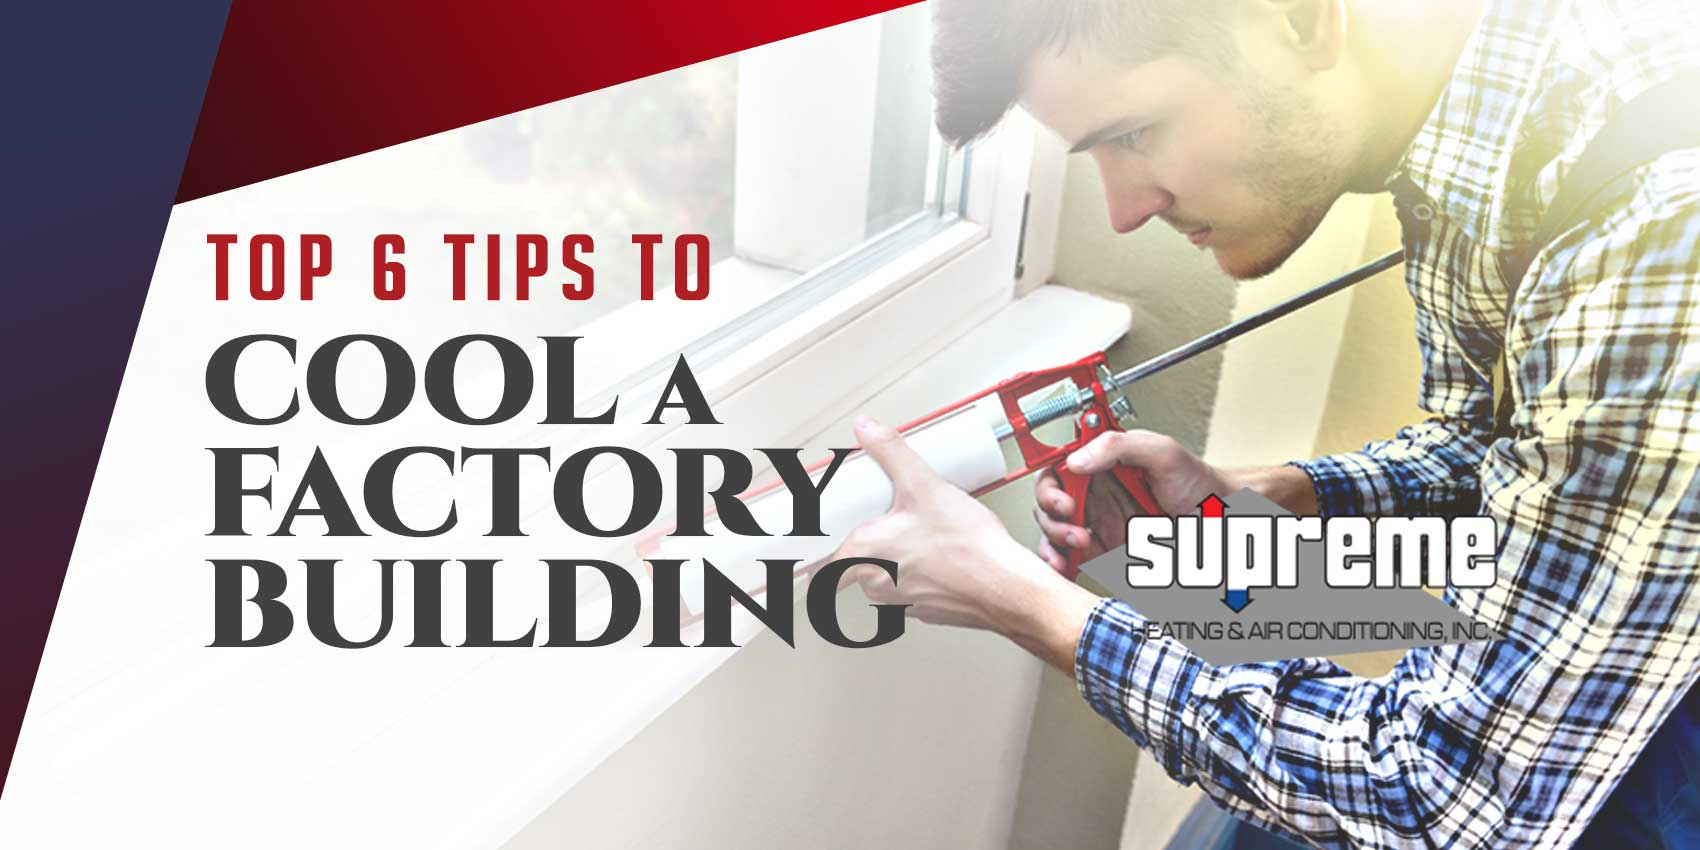 Top 6 Tips to Cool a Factory Building